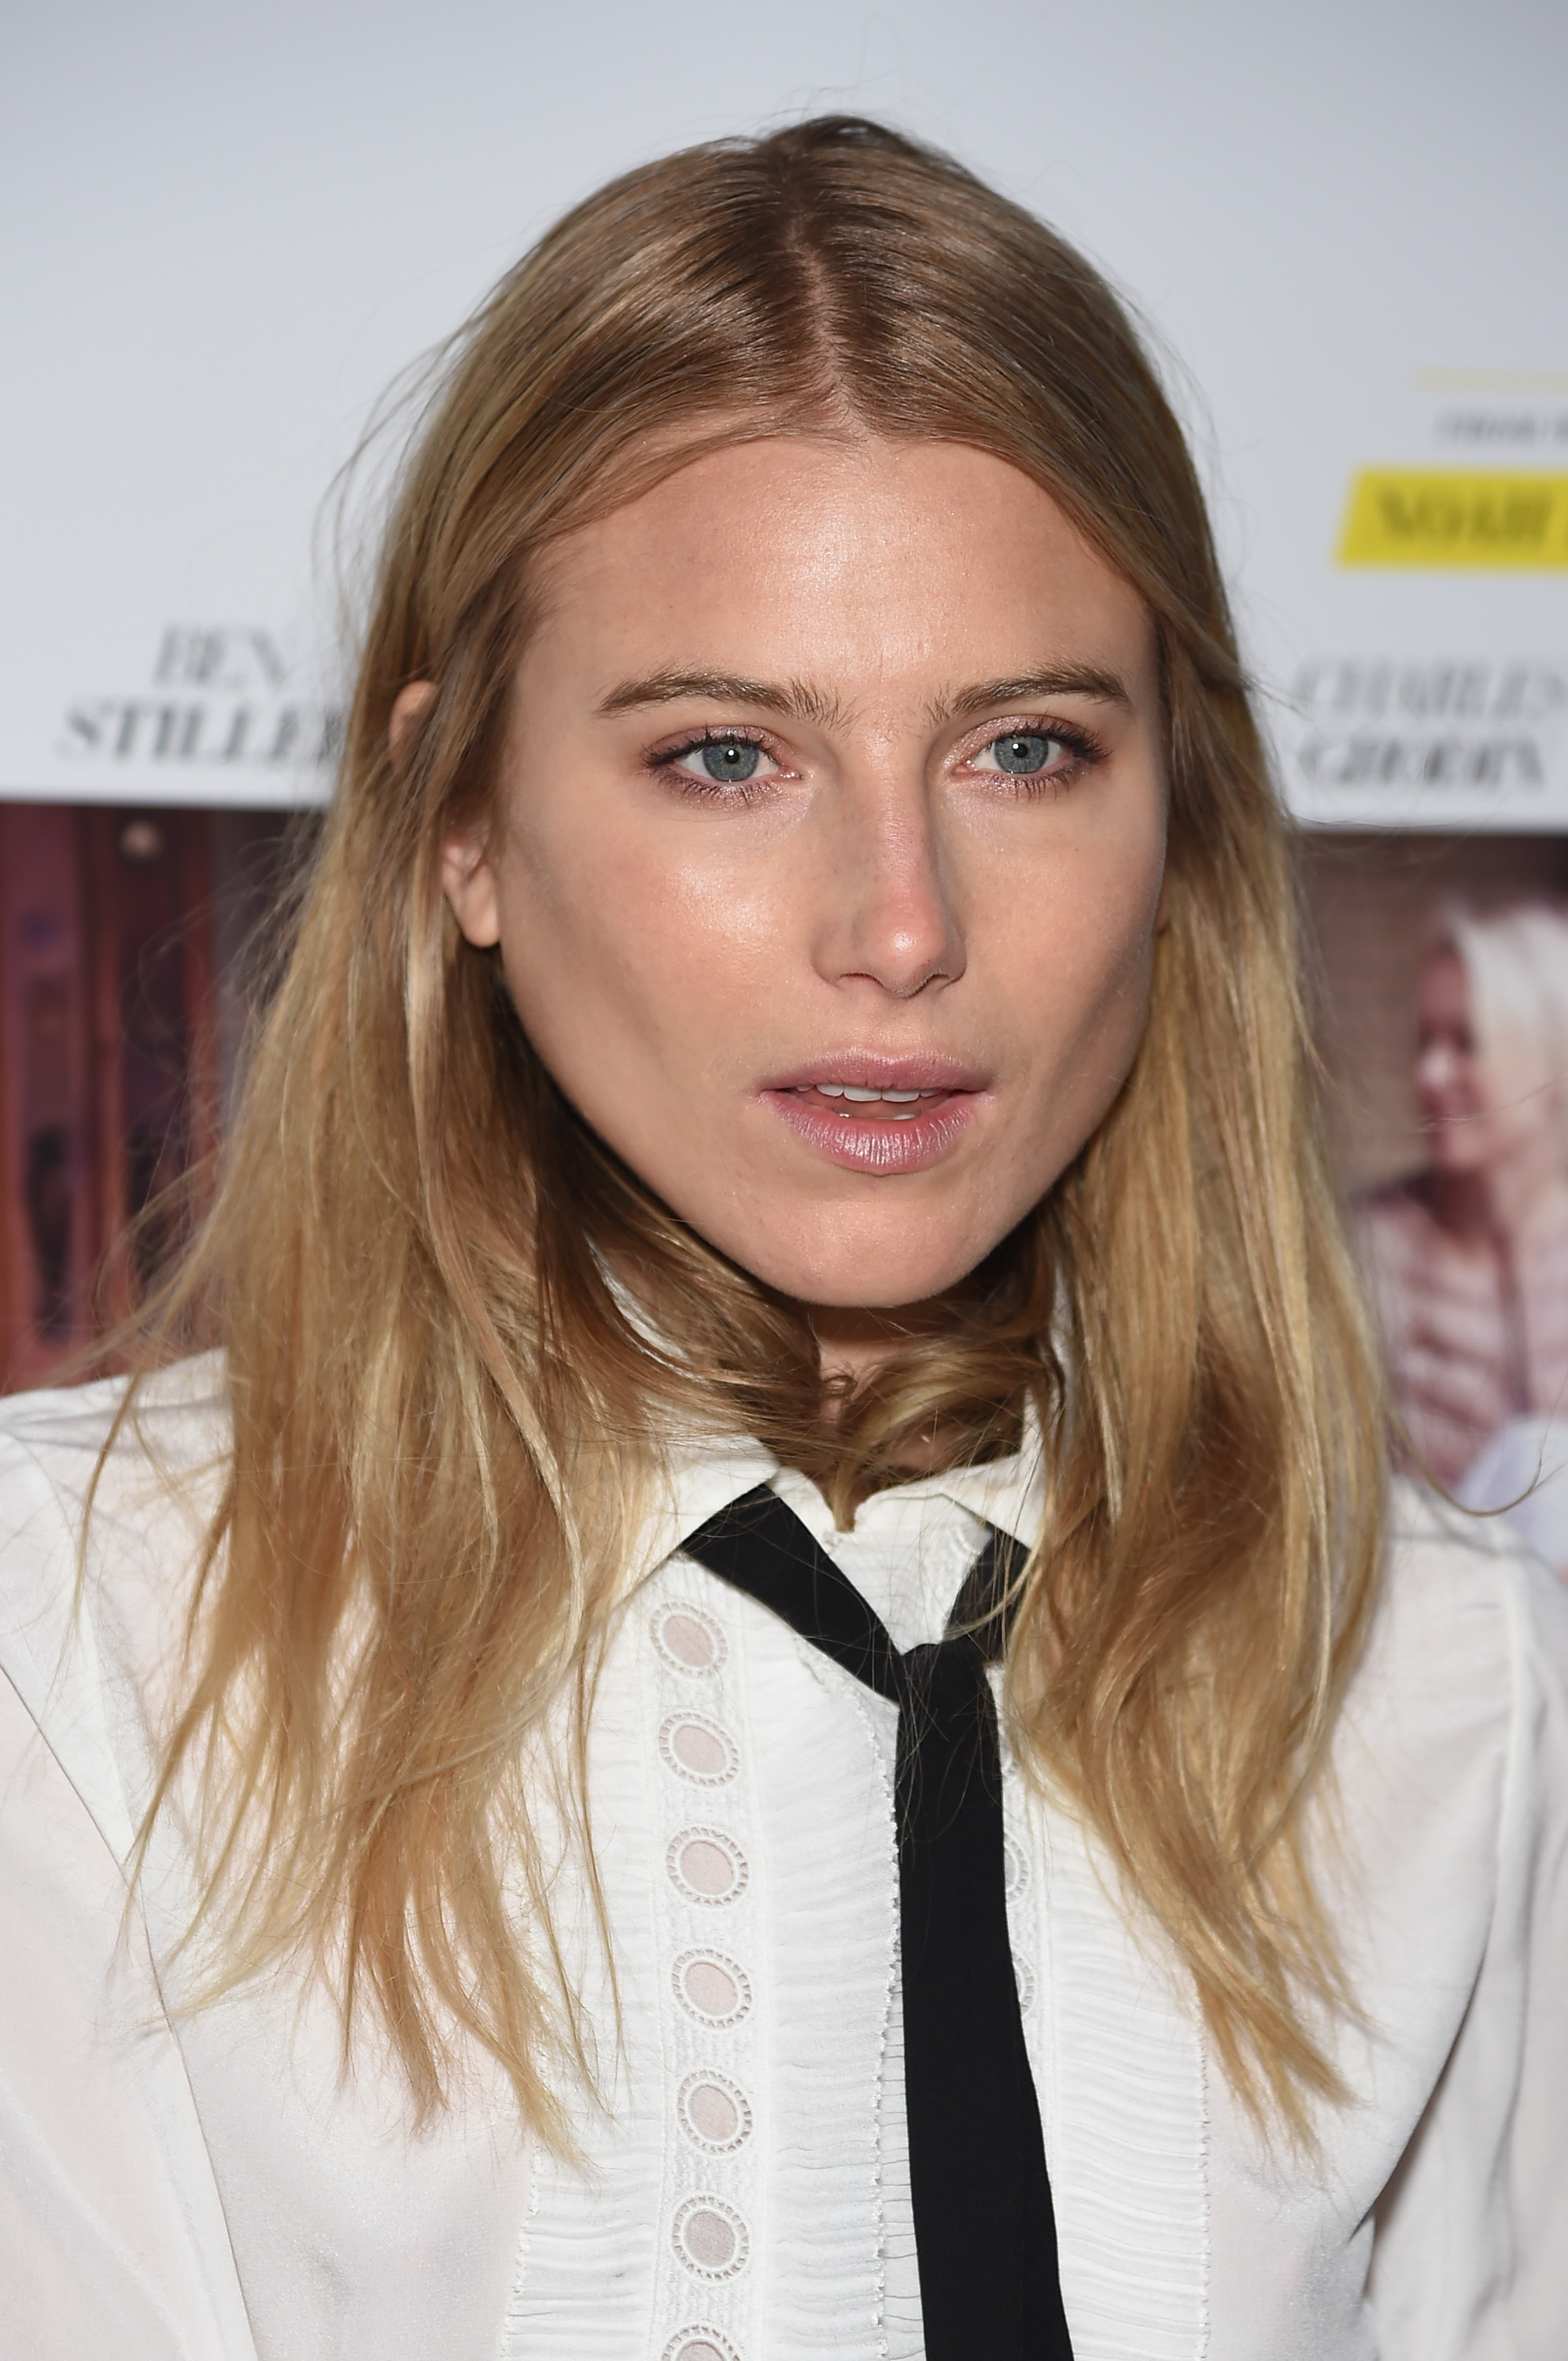 Images Dree Hemingway nudes (11 photos), Topless, Cleavage, Instagram, bra 2017